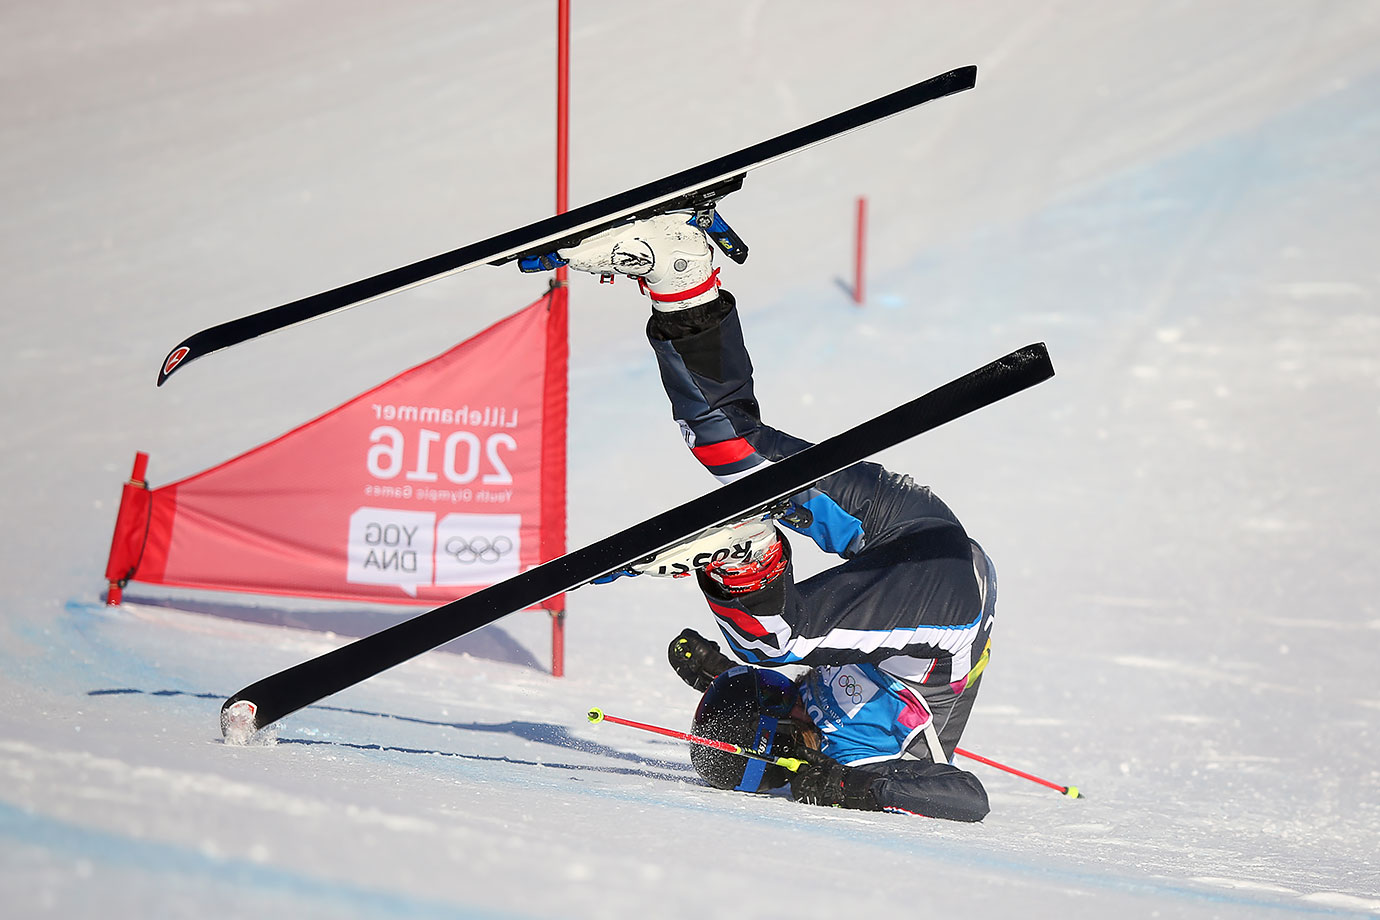 Margot Tresal Mauroz (FRA) crashes in the Ladies Ski Cross at the Hafjell Freepark on Feb. 15, 2016 during the Winter Youth Olympic Games in Lillehammer, Norway.